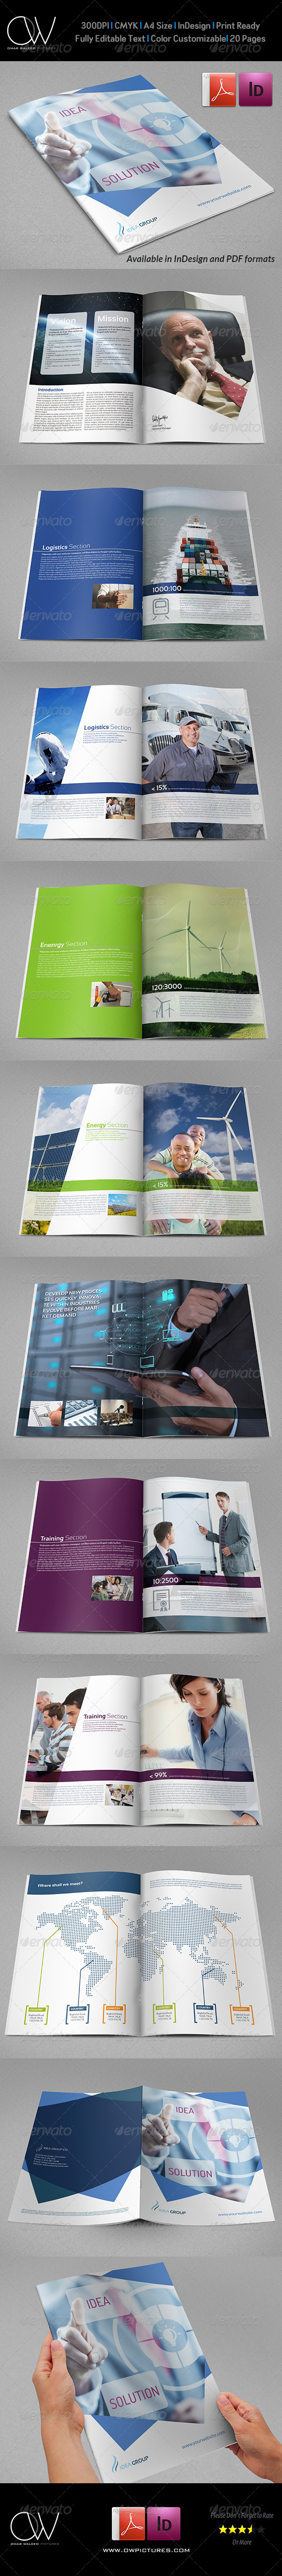 GraphicRiver Corporate Brochure Template Vol.28 20 Pages 6958442